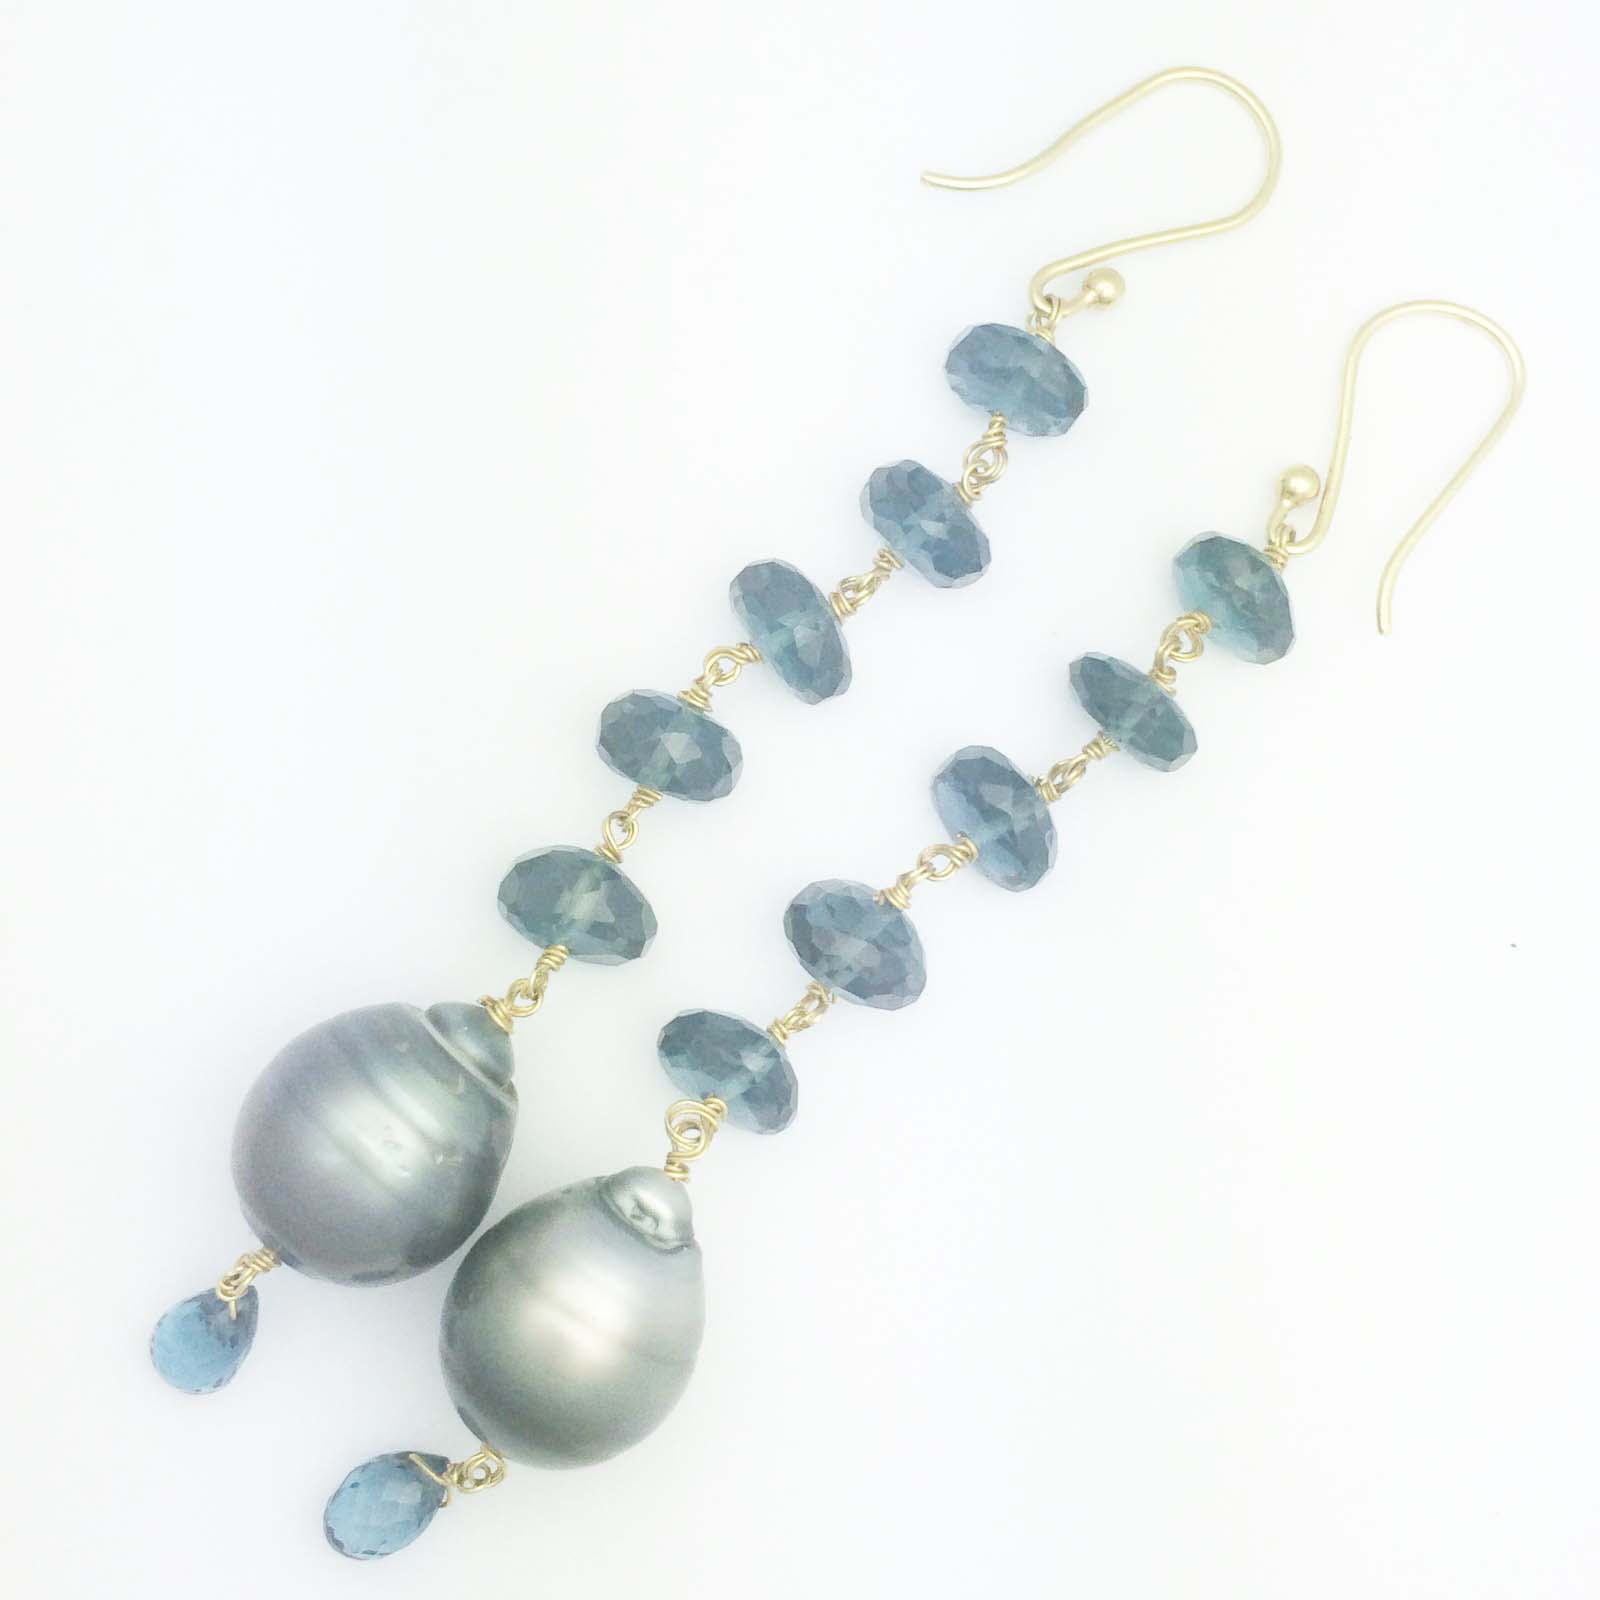 18k London Blue Topaz and Tahitian pearl drop earrings